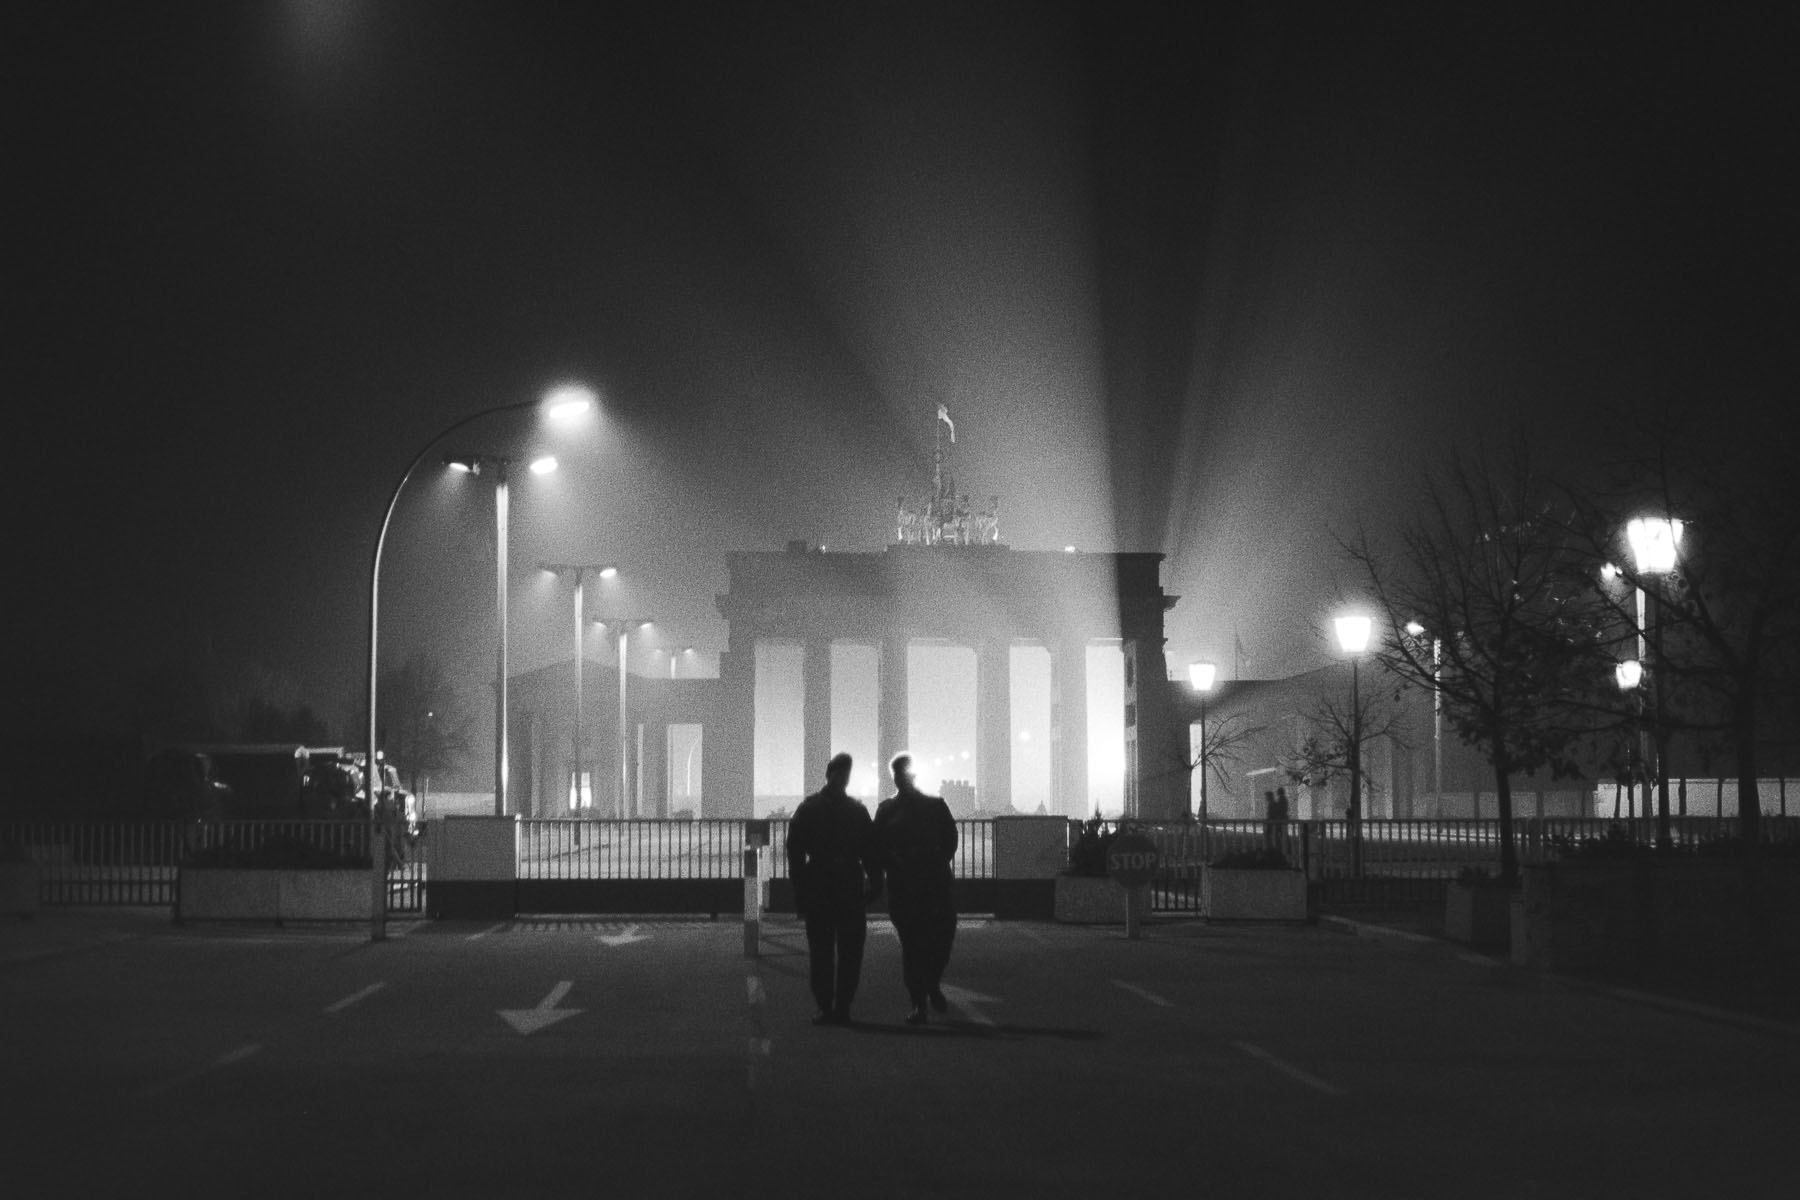 East German soldiers lit by the lights of the western world through the Brandenburg Gate on November 10, 1989